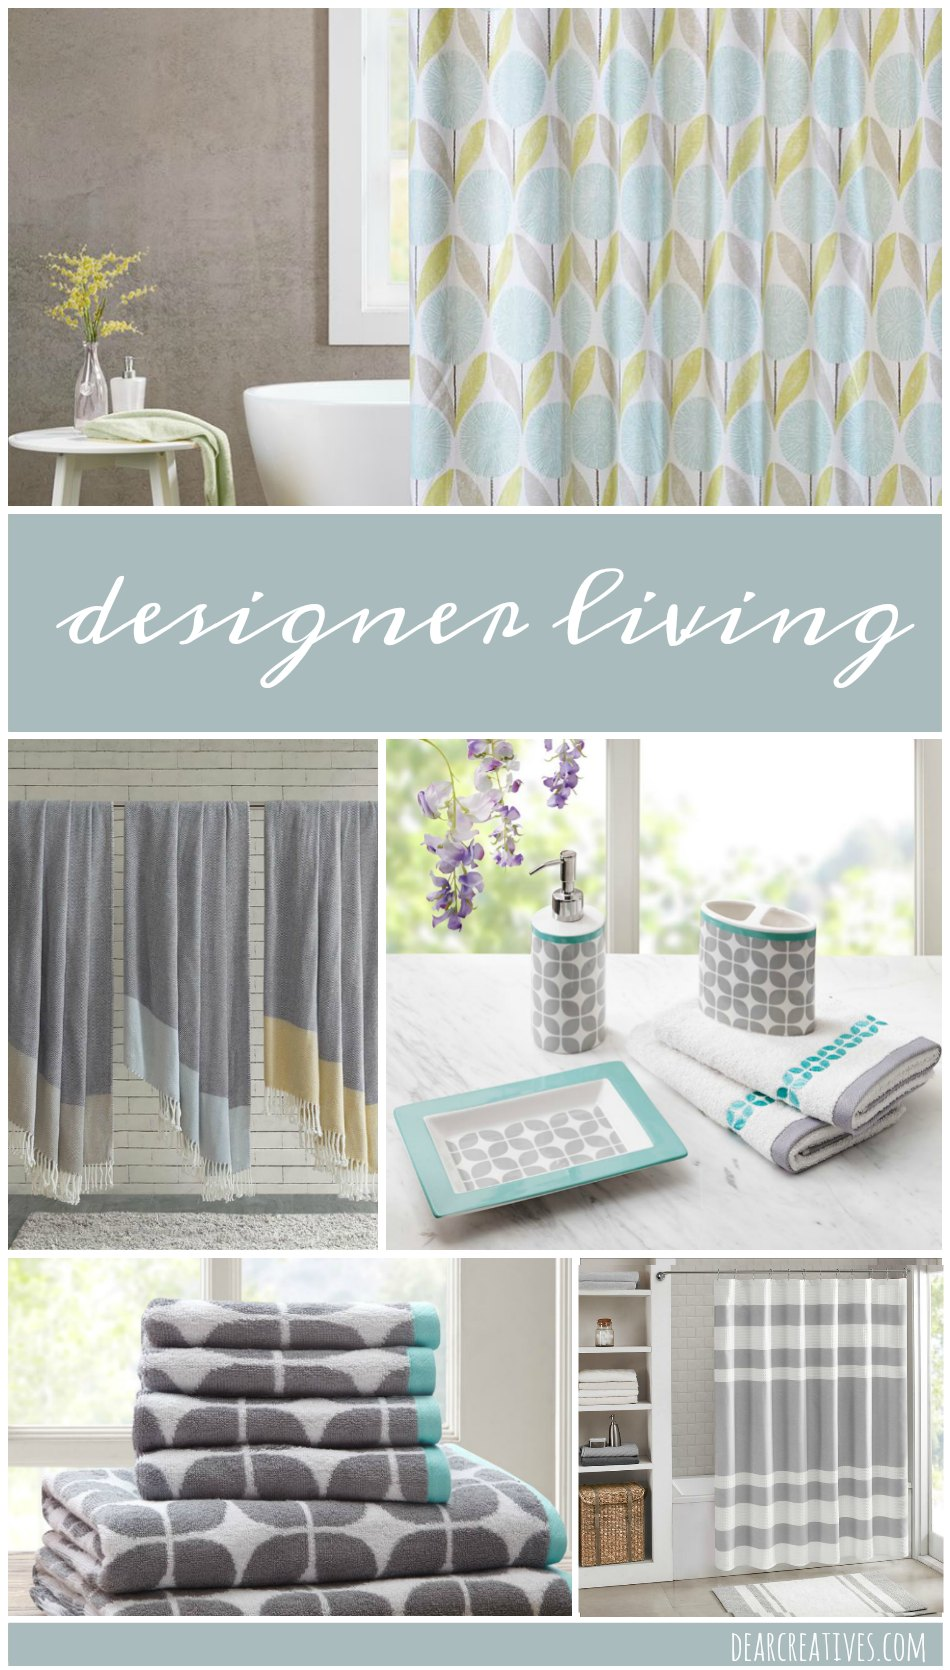 Home Decor Ideas And Tips Styled With Designer Living